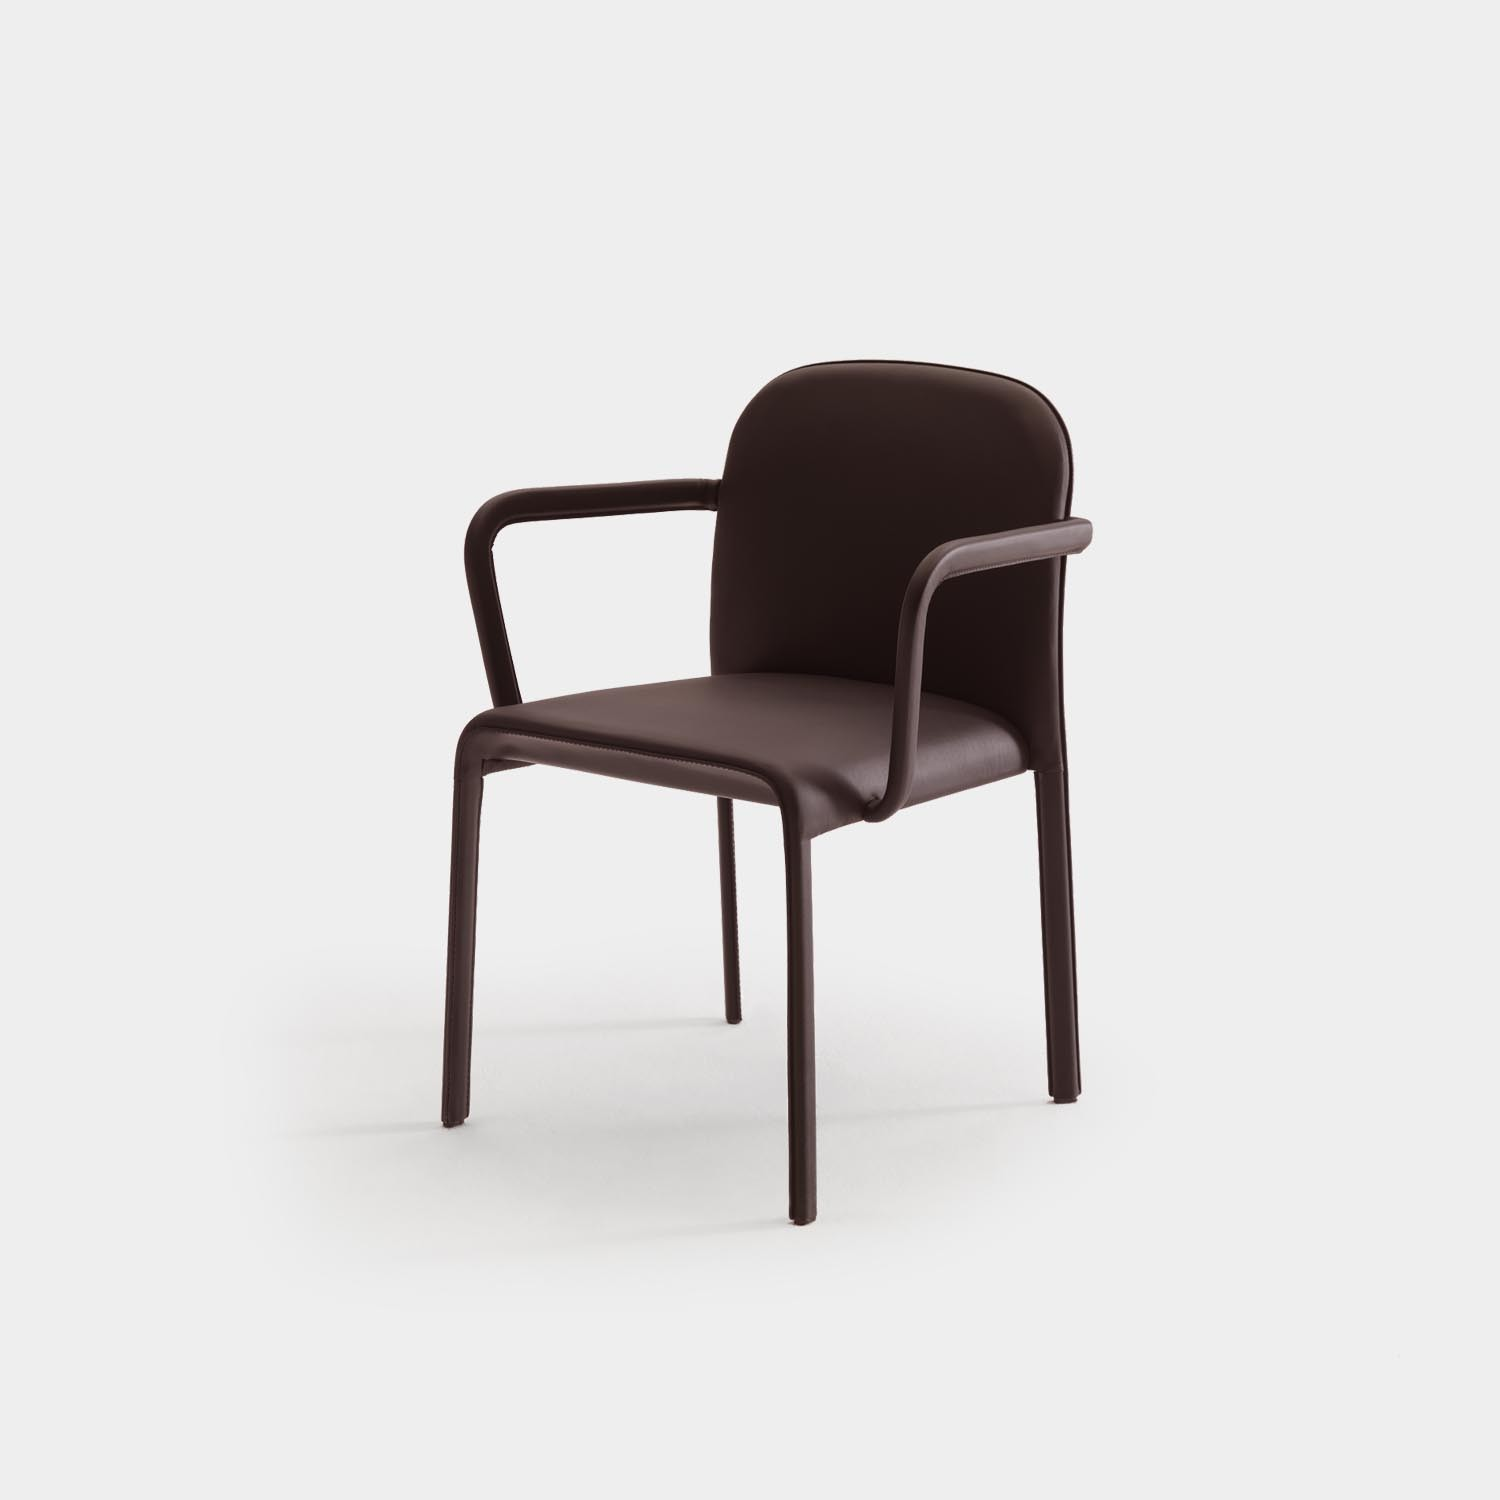 Scala Chair with Armrest, Fully Upholstered, Brown Leather